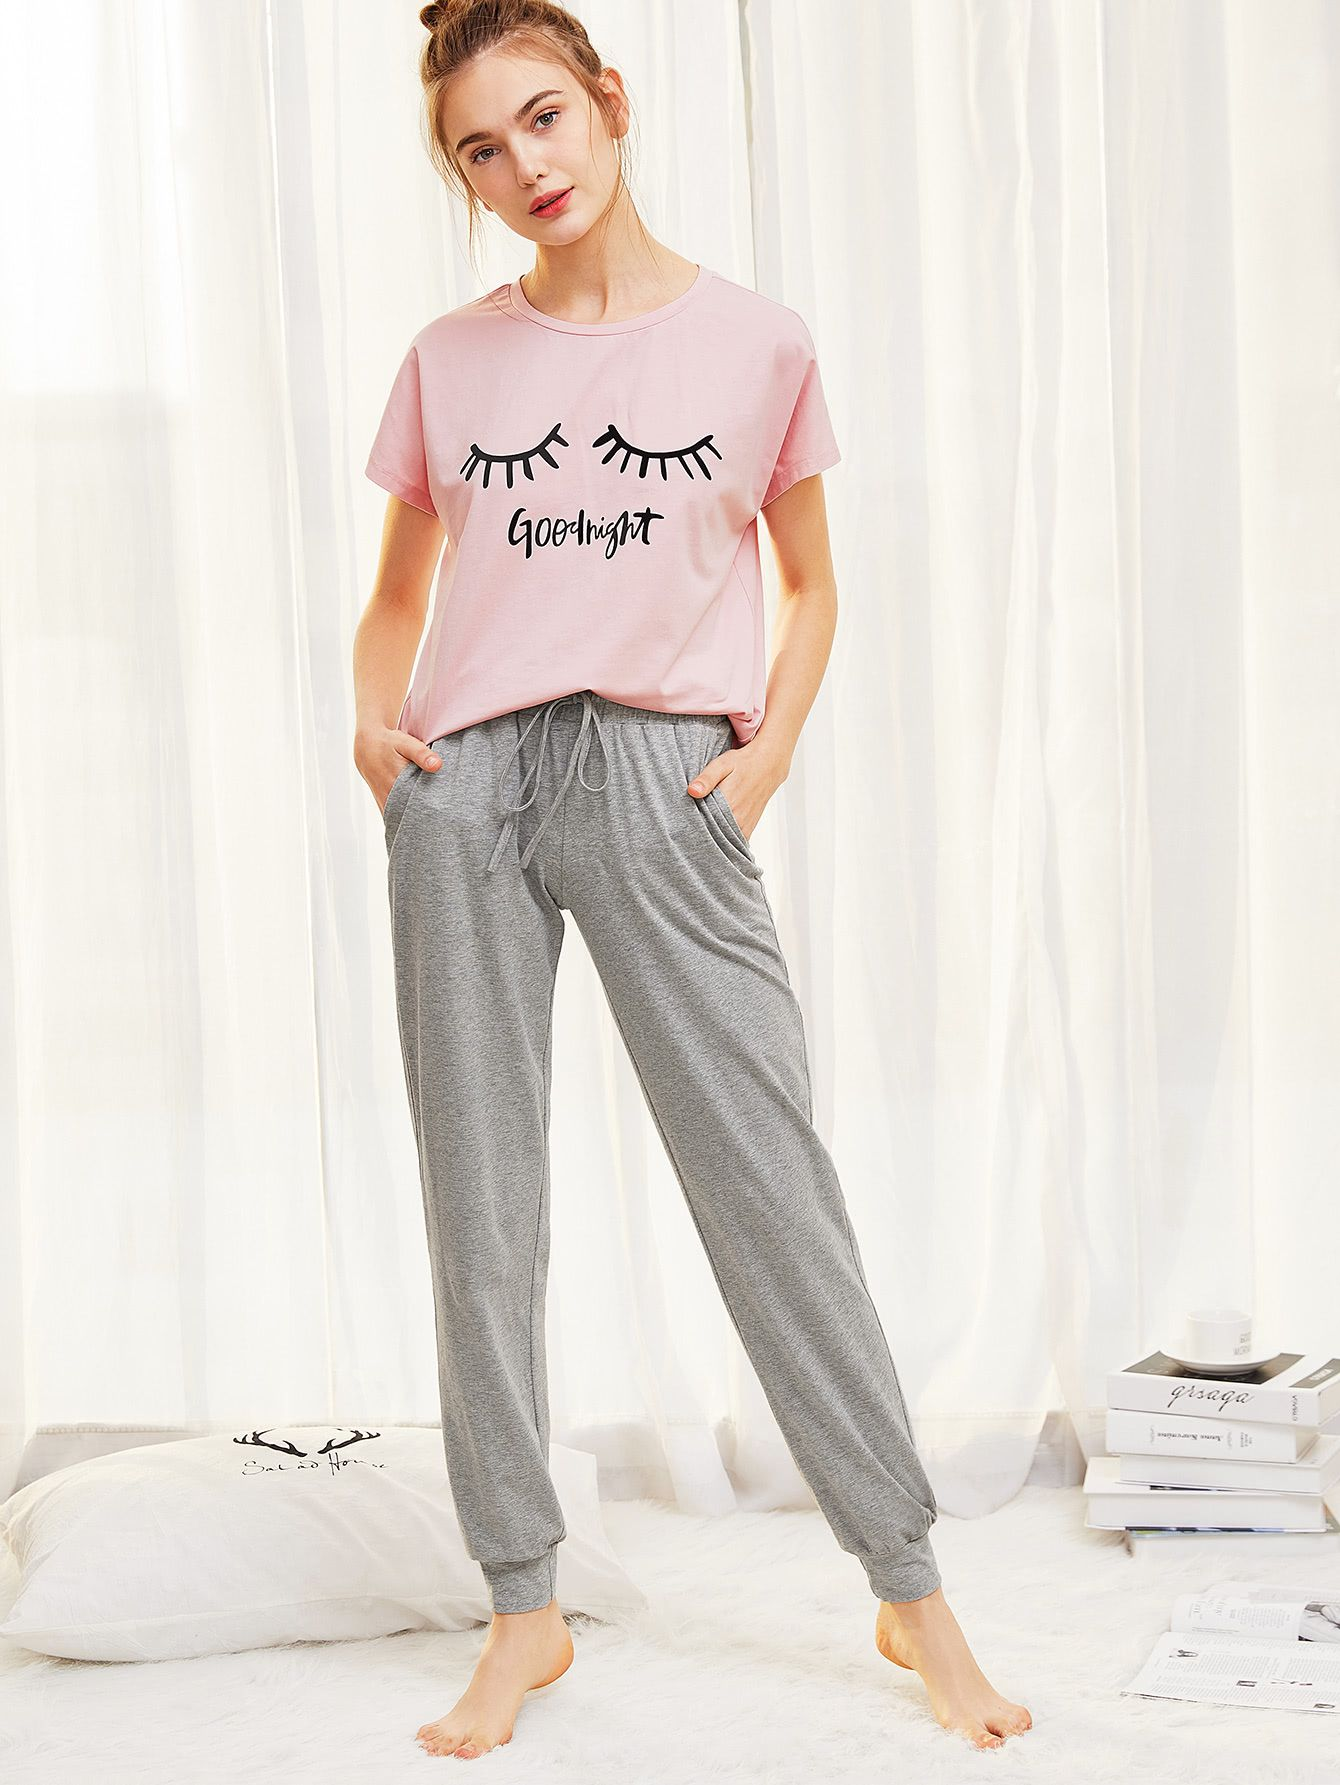 1255a8d5d0 Shop Graphic Tee And Heathered Sweatpants PJ Set online. SheIn offers  Graphic Tee And Heathered Sweatpants PJ Set & more to fit your fashionable  needs.